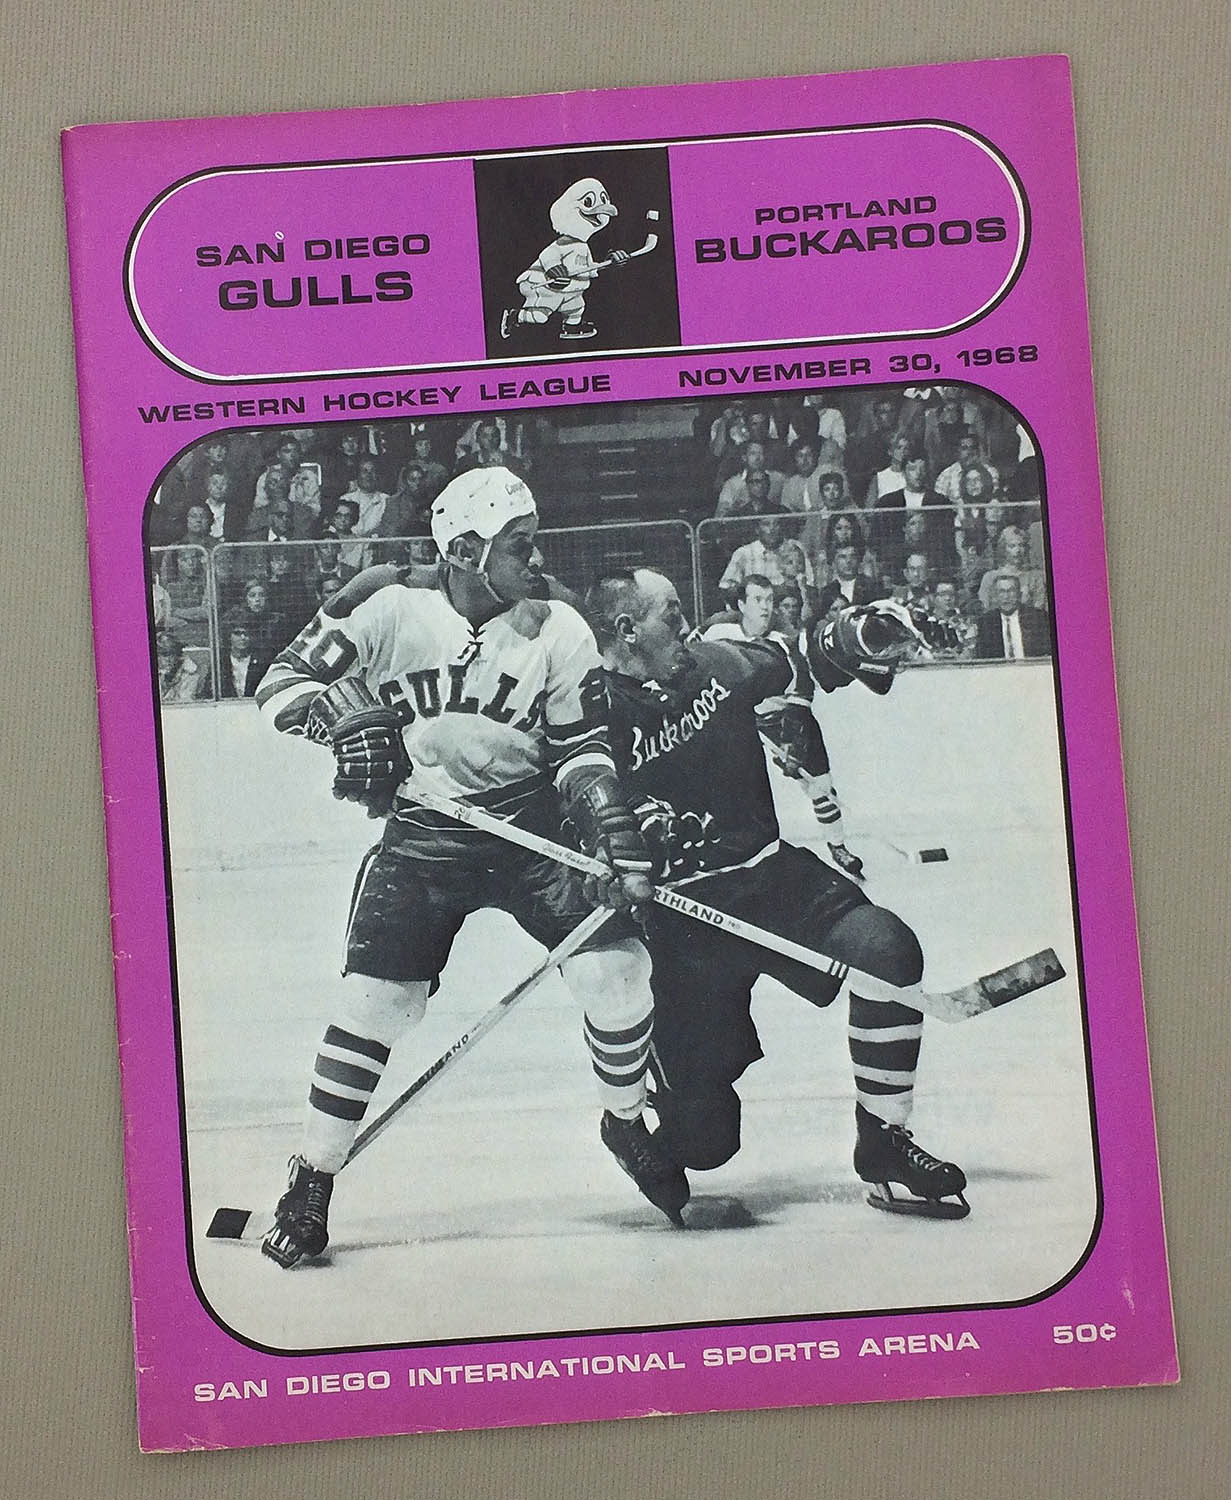 San Diego Gulls November 1968 Program Sportshistorycollectibles Com